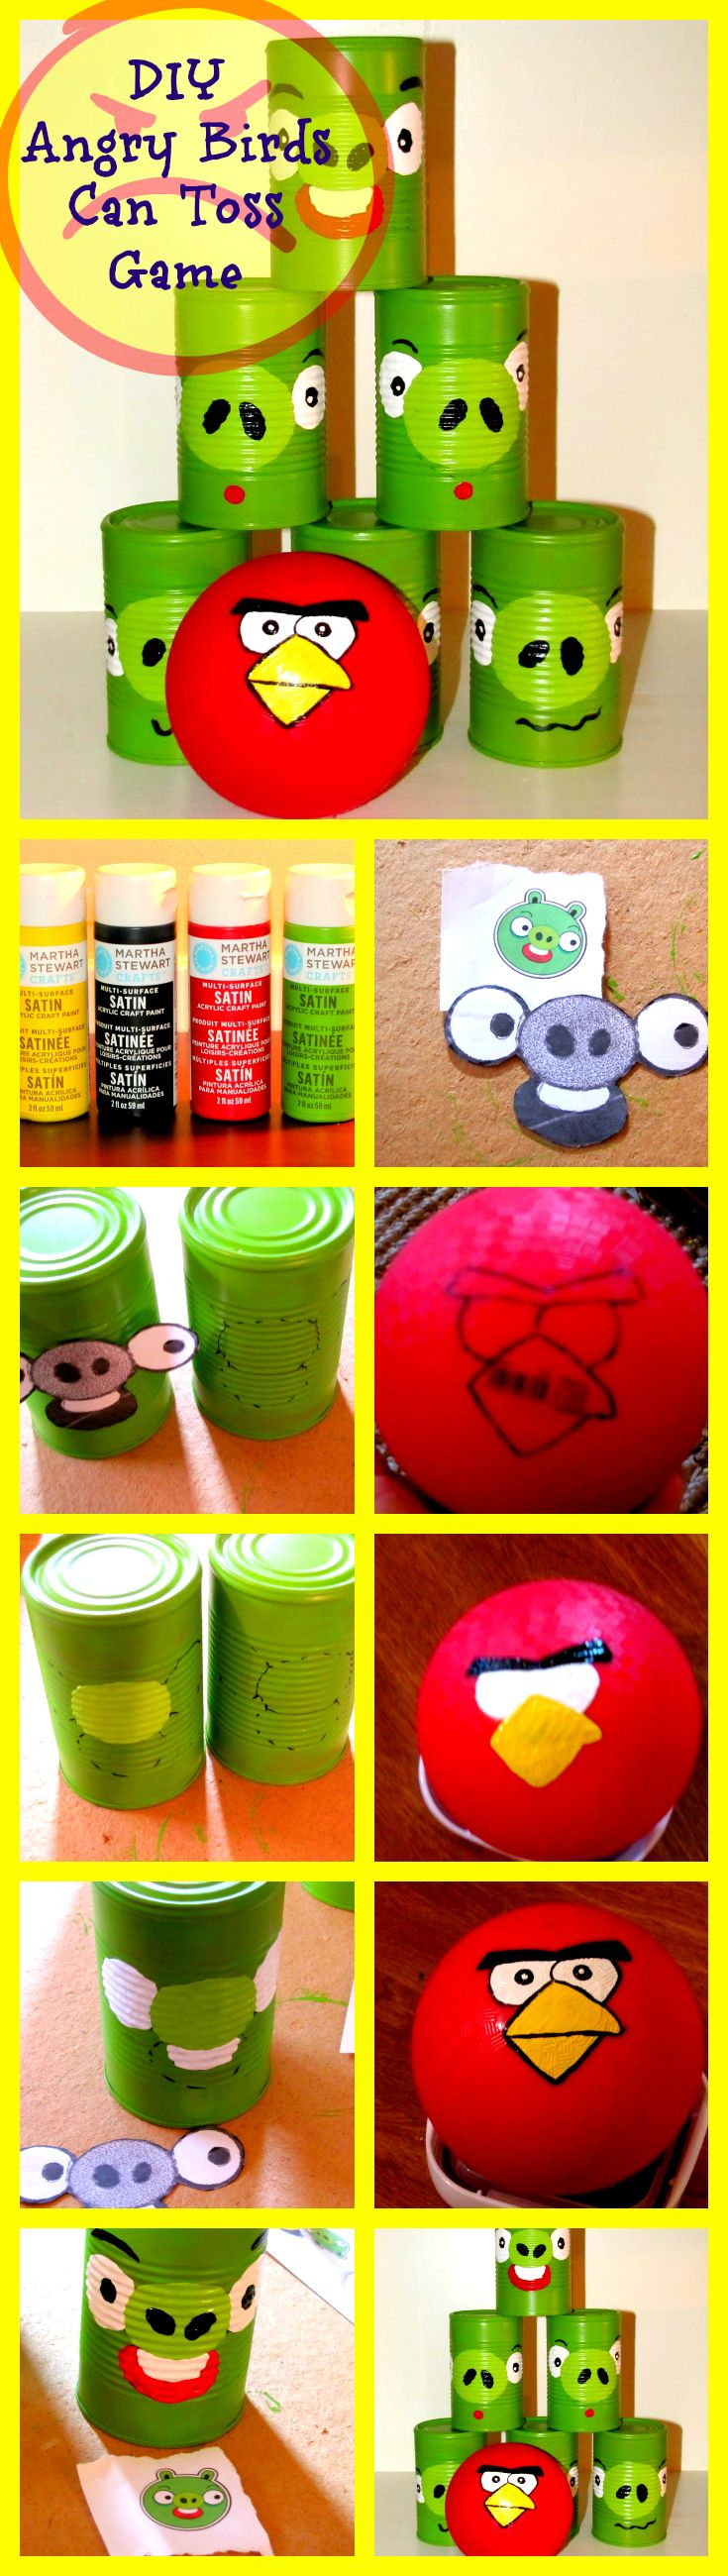 How-to-Make-an-Angry-Birds-Can-Toss-Game.jpg 735×2,600 pixels